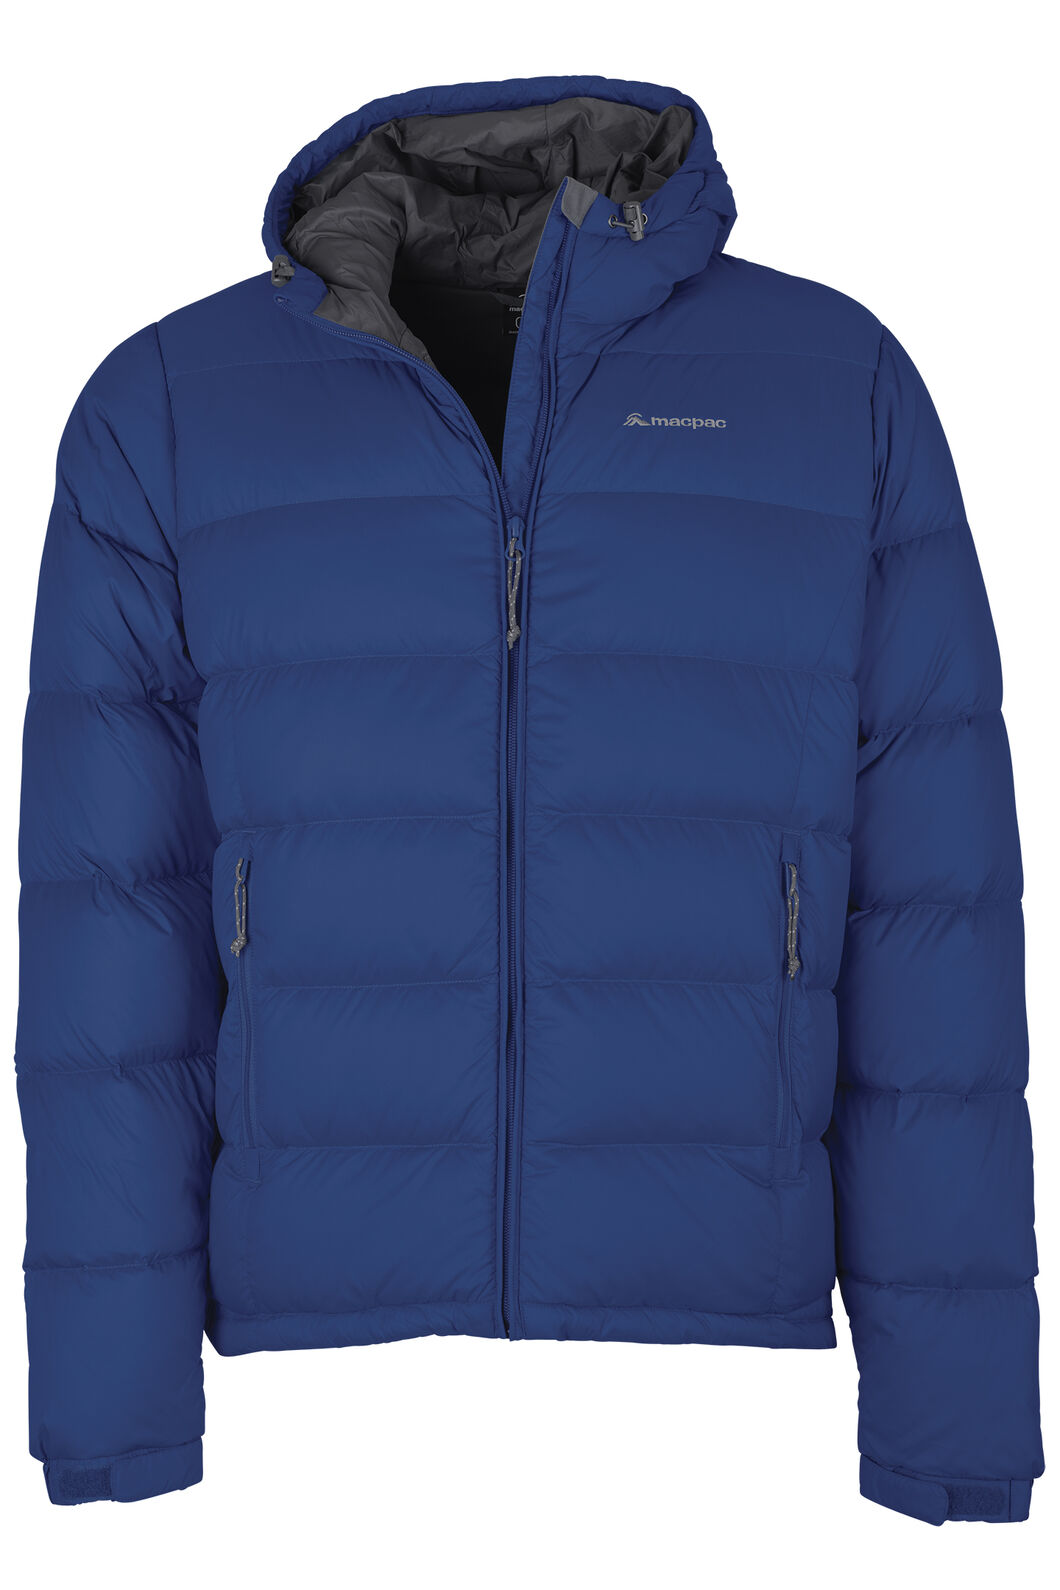 Macpac Halo Hooded Down Jacket - Men's, Classic Blue, hi-res